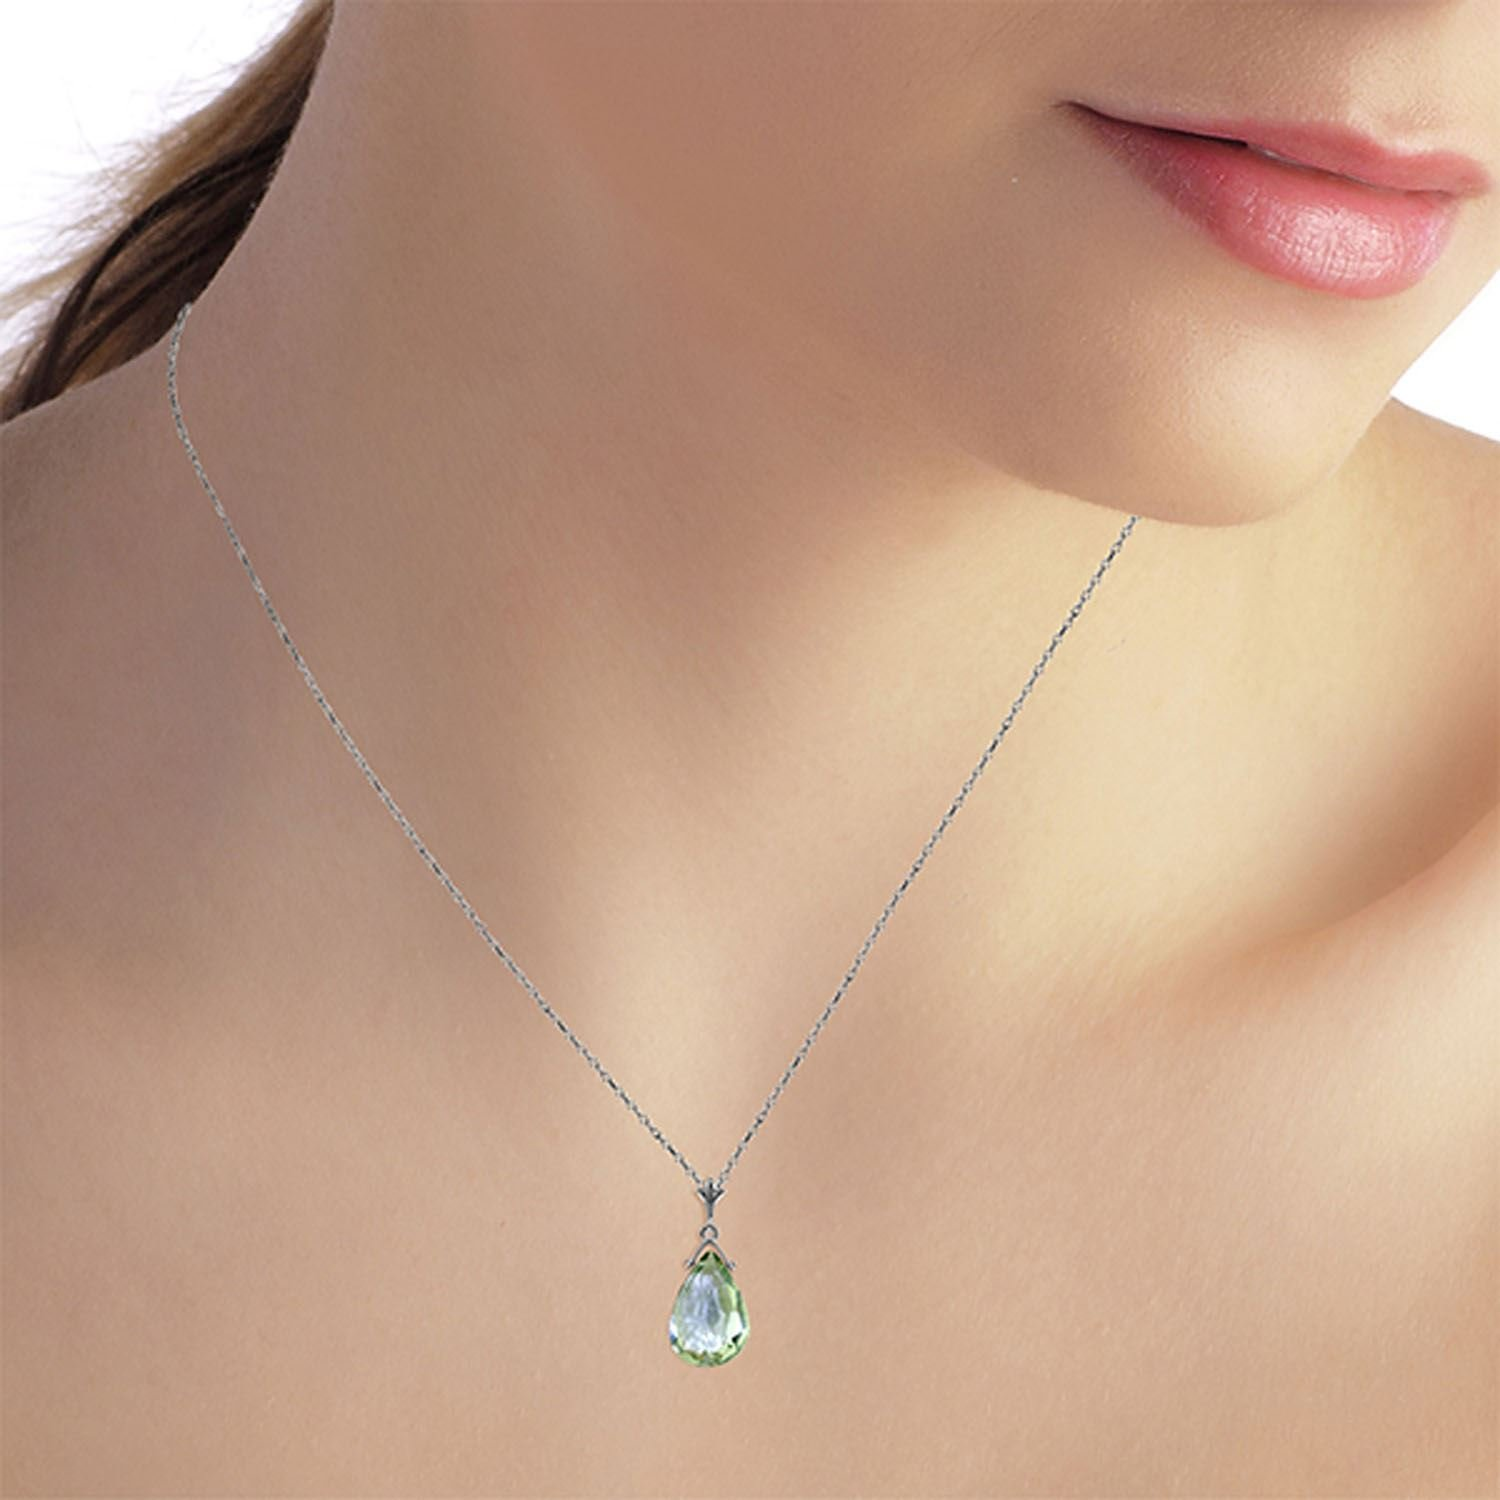 ALARRI 5.1 Carat 14K Solid White Gold Necklace Briolette Green Amethyst with 18 Inch Chain Length by ALARRI (Image #3)